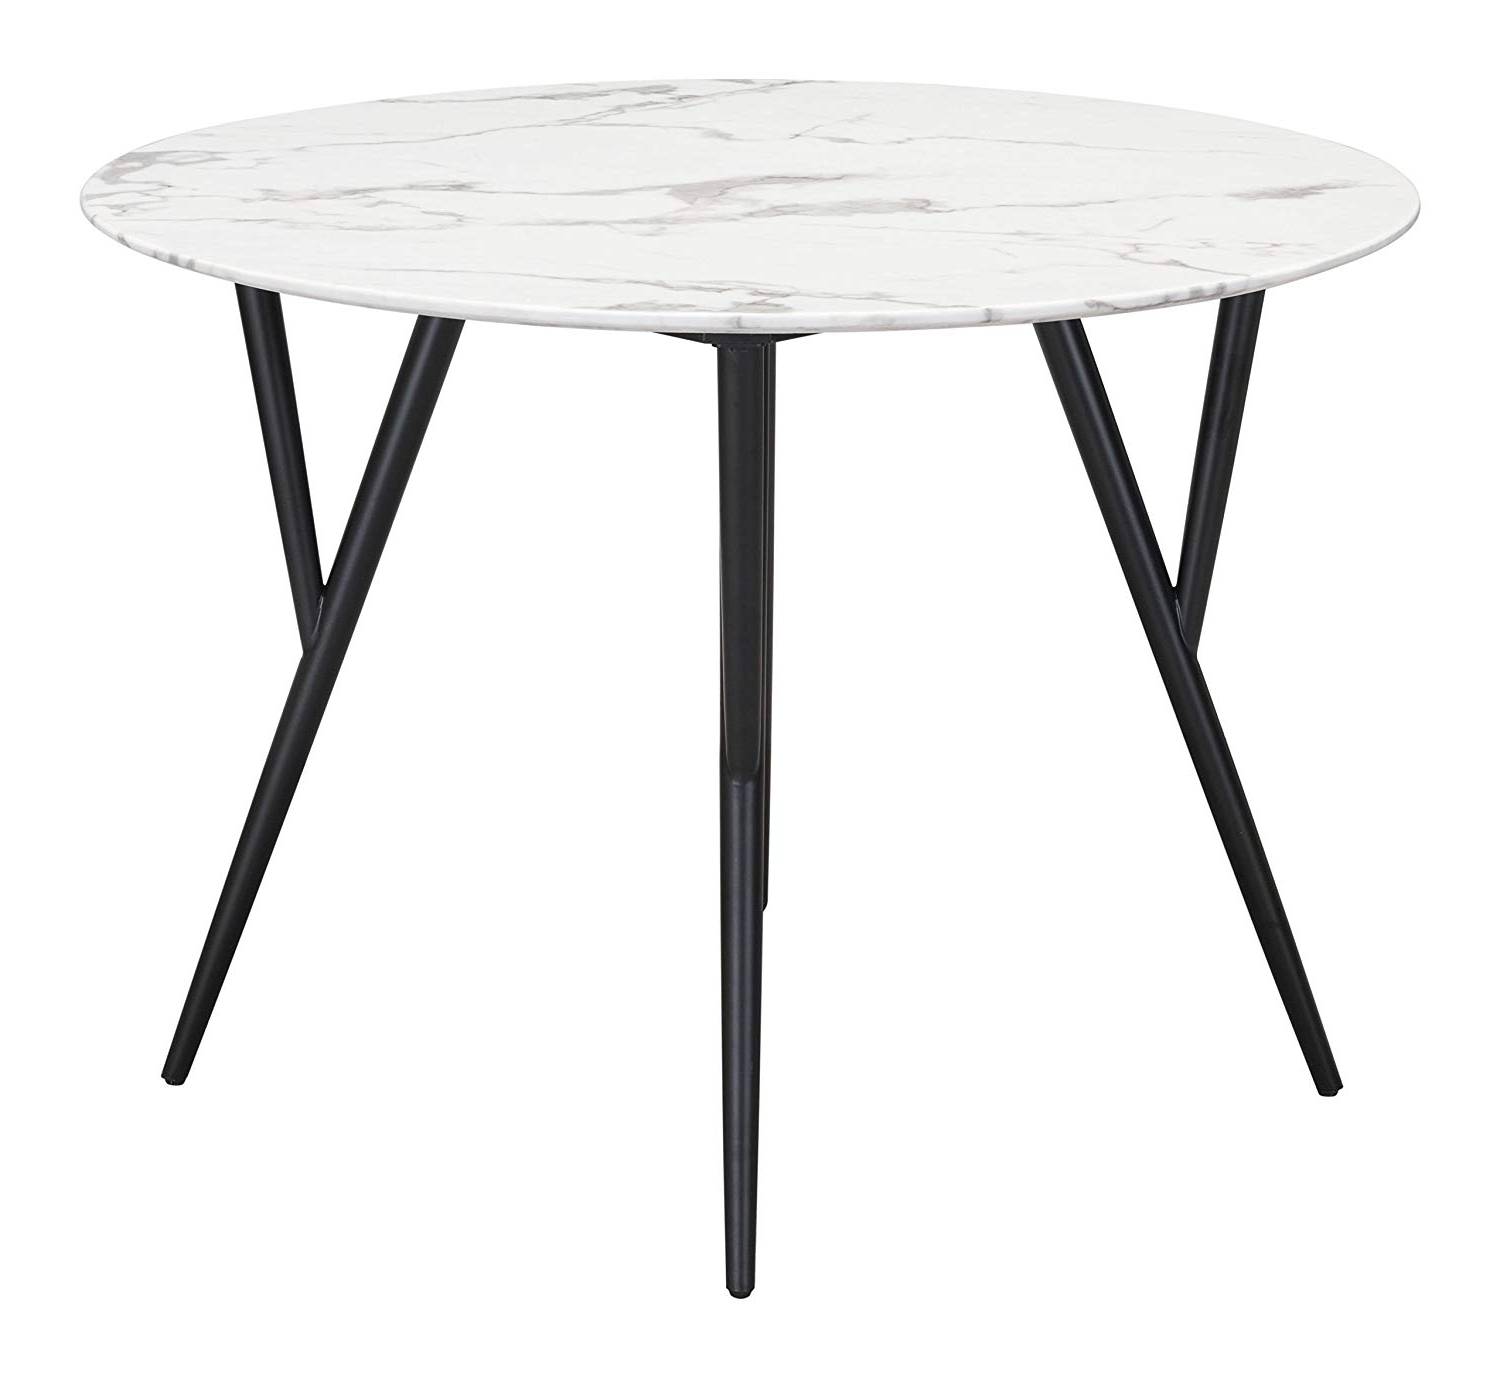 Amazon – Dzi Marcus Dining Table Stone & Matt Black – Tables Intended For Trendy Modern Glass Top Extension Dining Tables In Matte Black (View 5 of 30)